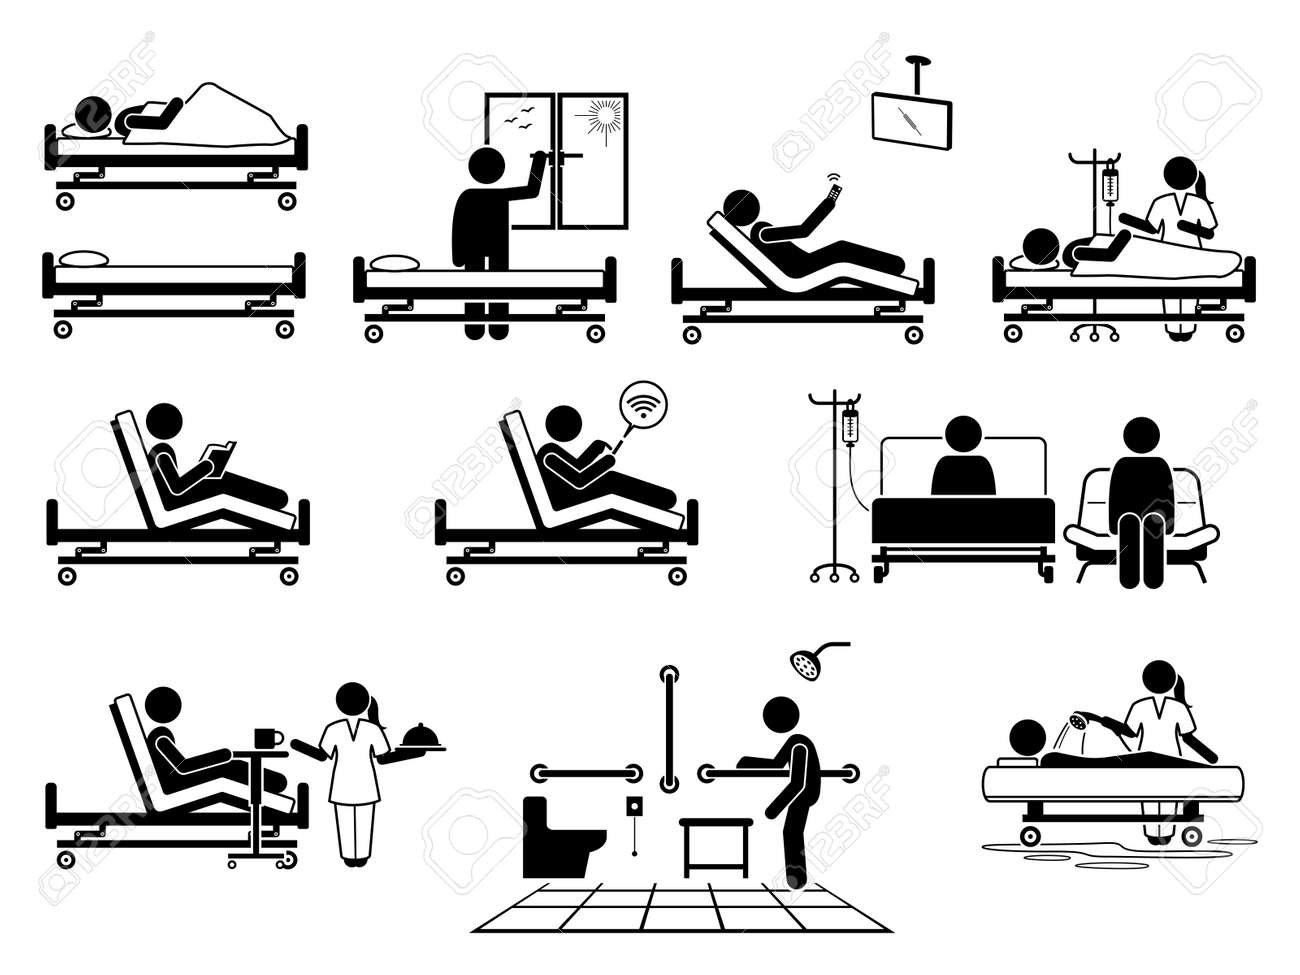 Patient at hospital room with many facilities stick figure pictogram icons. Vector illustrations of patient, hospital bed, window, television, nurse, wifi, visitor, food serving, toilet and bathroom. - 173408486